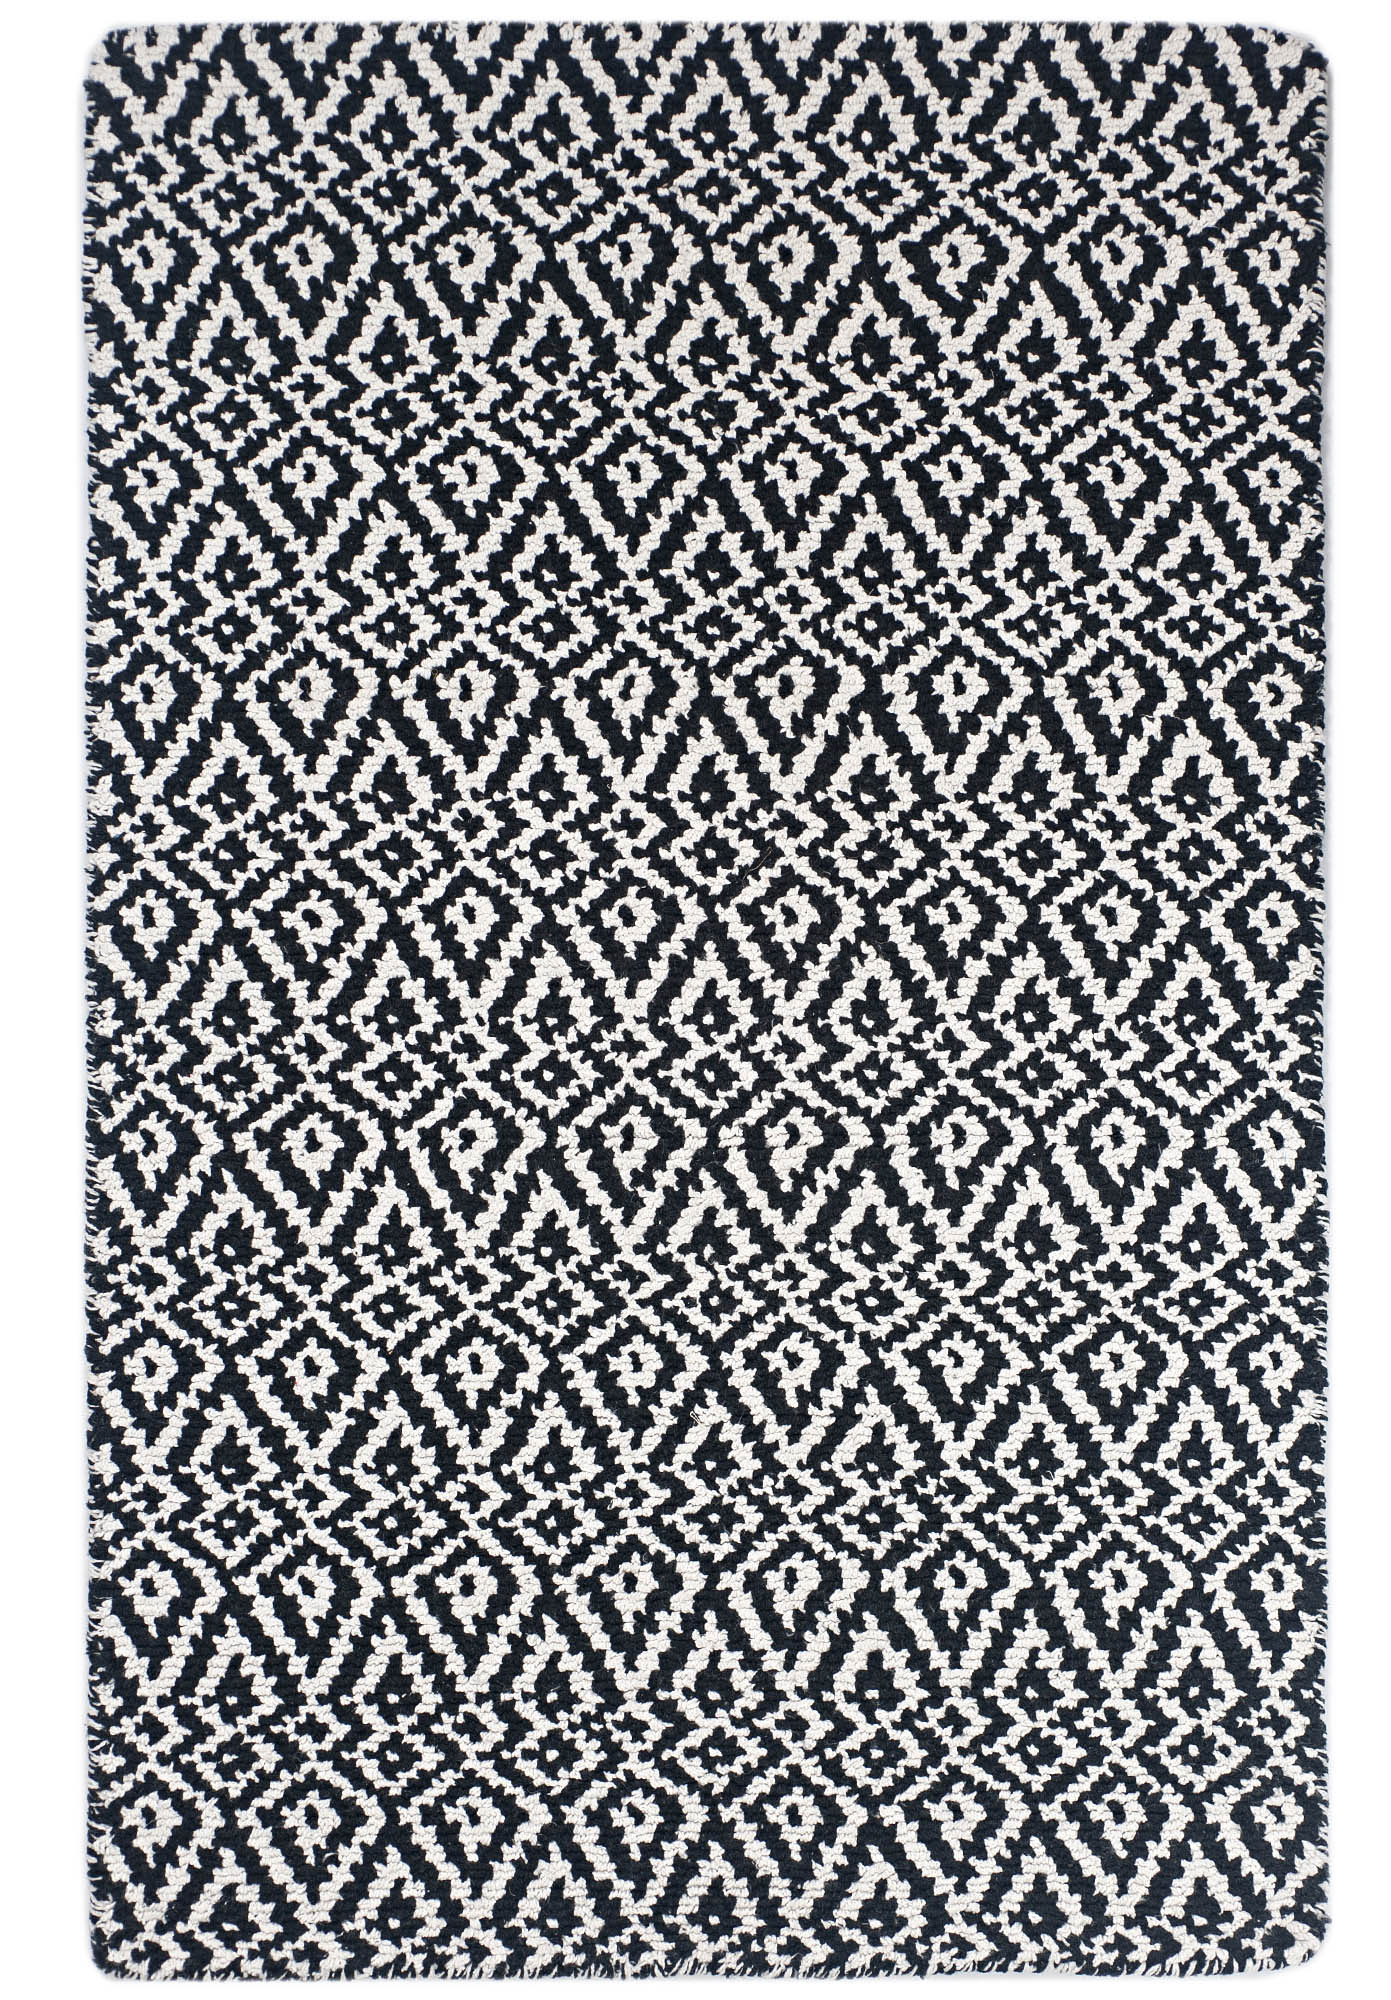 Picture of: Oslo Black And White Eco Cotton Loom Hooked Rug Hook Loom